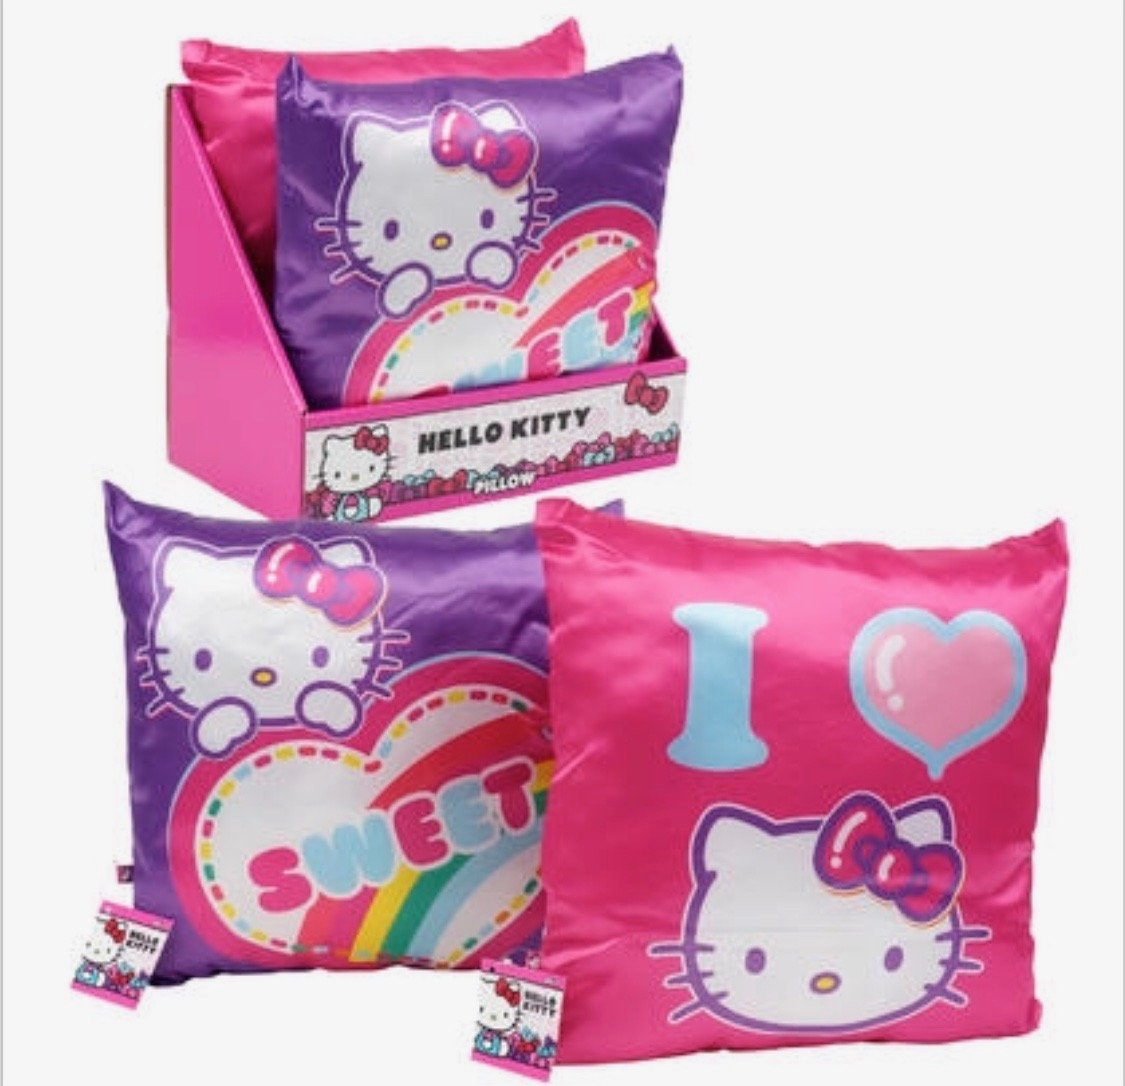 Hello Kitty 2 Pack Decorative Shinny Pillow,Heavy Padding,11 x 11 in,For Girl,Perfect Gift idea For Bedroom Decoration,Birthday,Christmas,Easter(available also by one Pack) (2 Pack) made in china